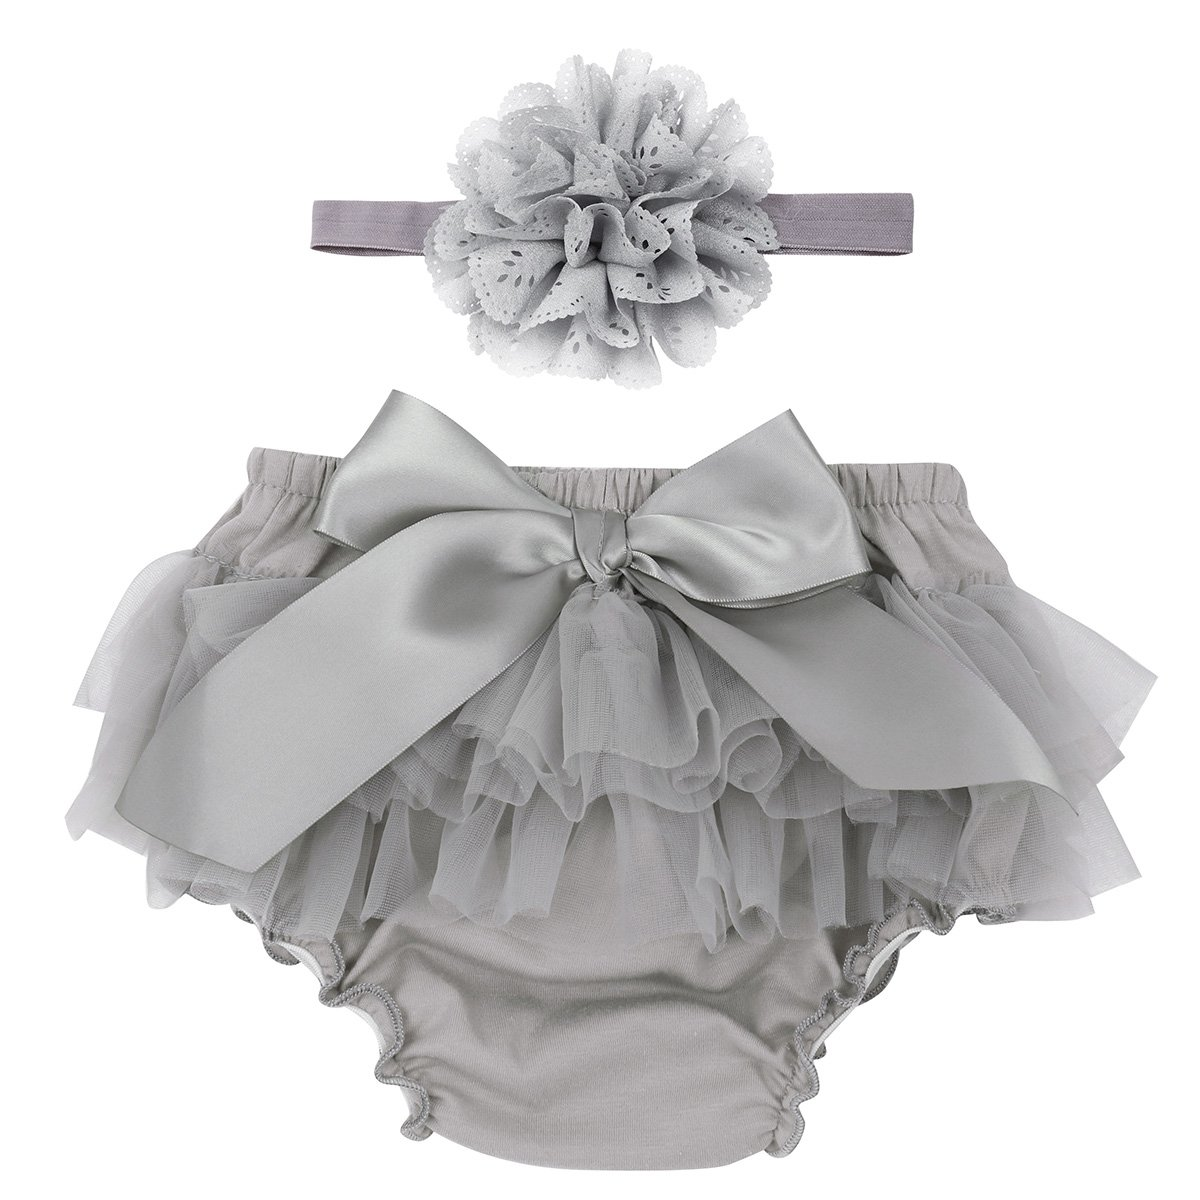 Alvivi Infant Baby Girls Cotton Tulle Ruffle Diaper Covers Bloomer with Flower Headband